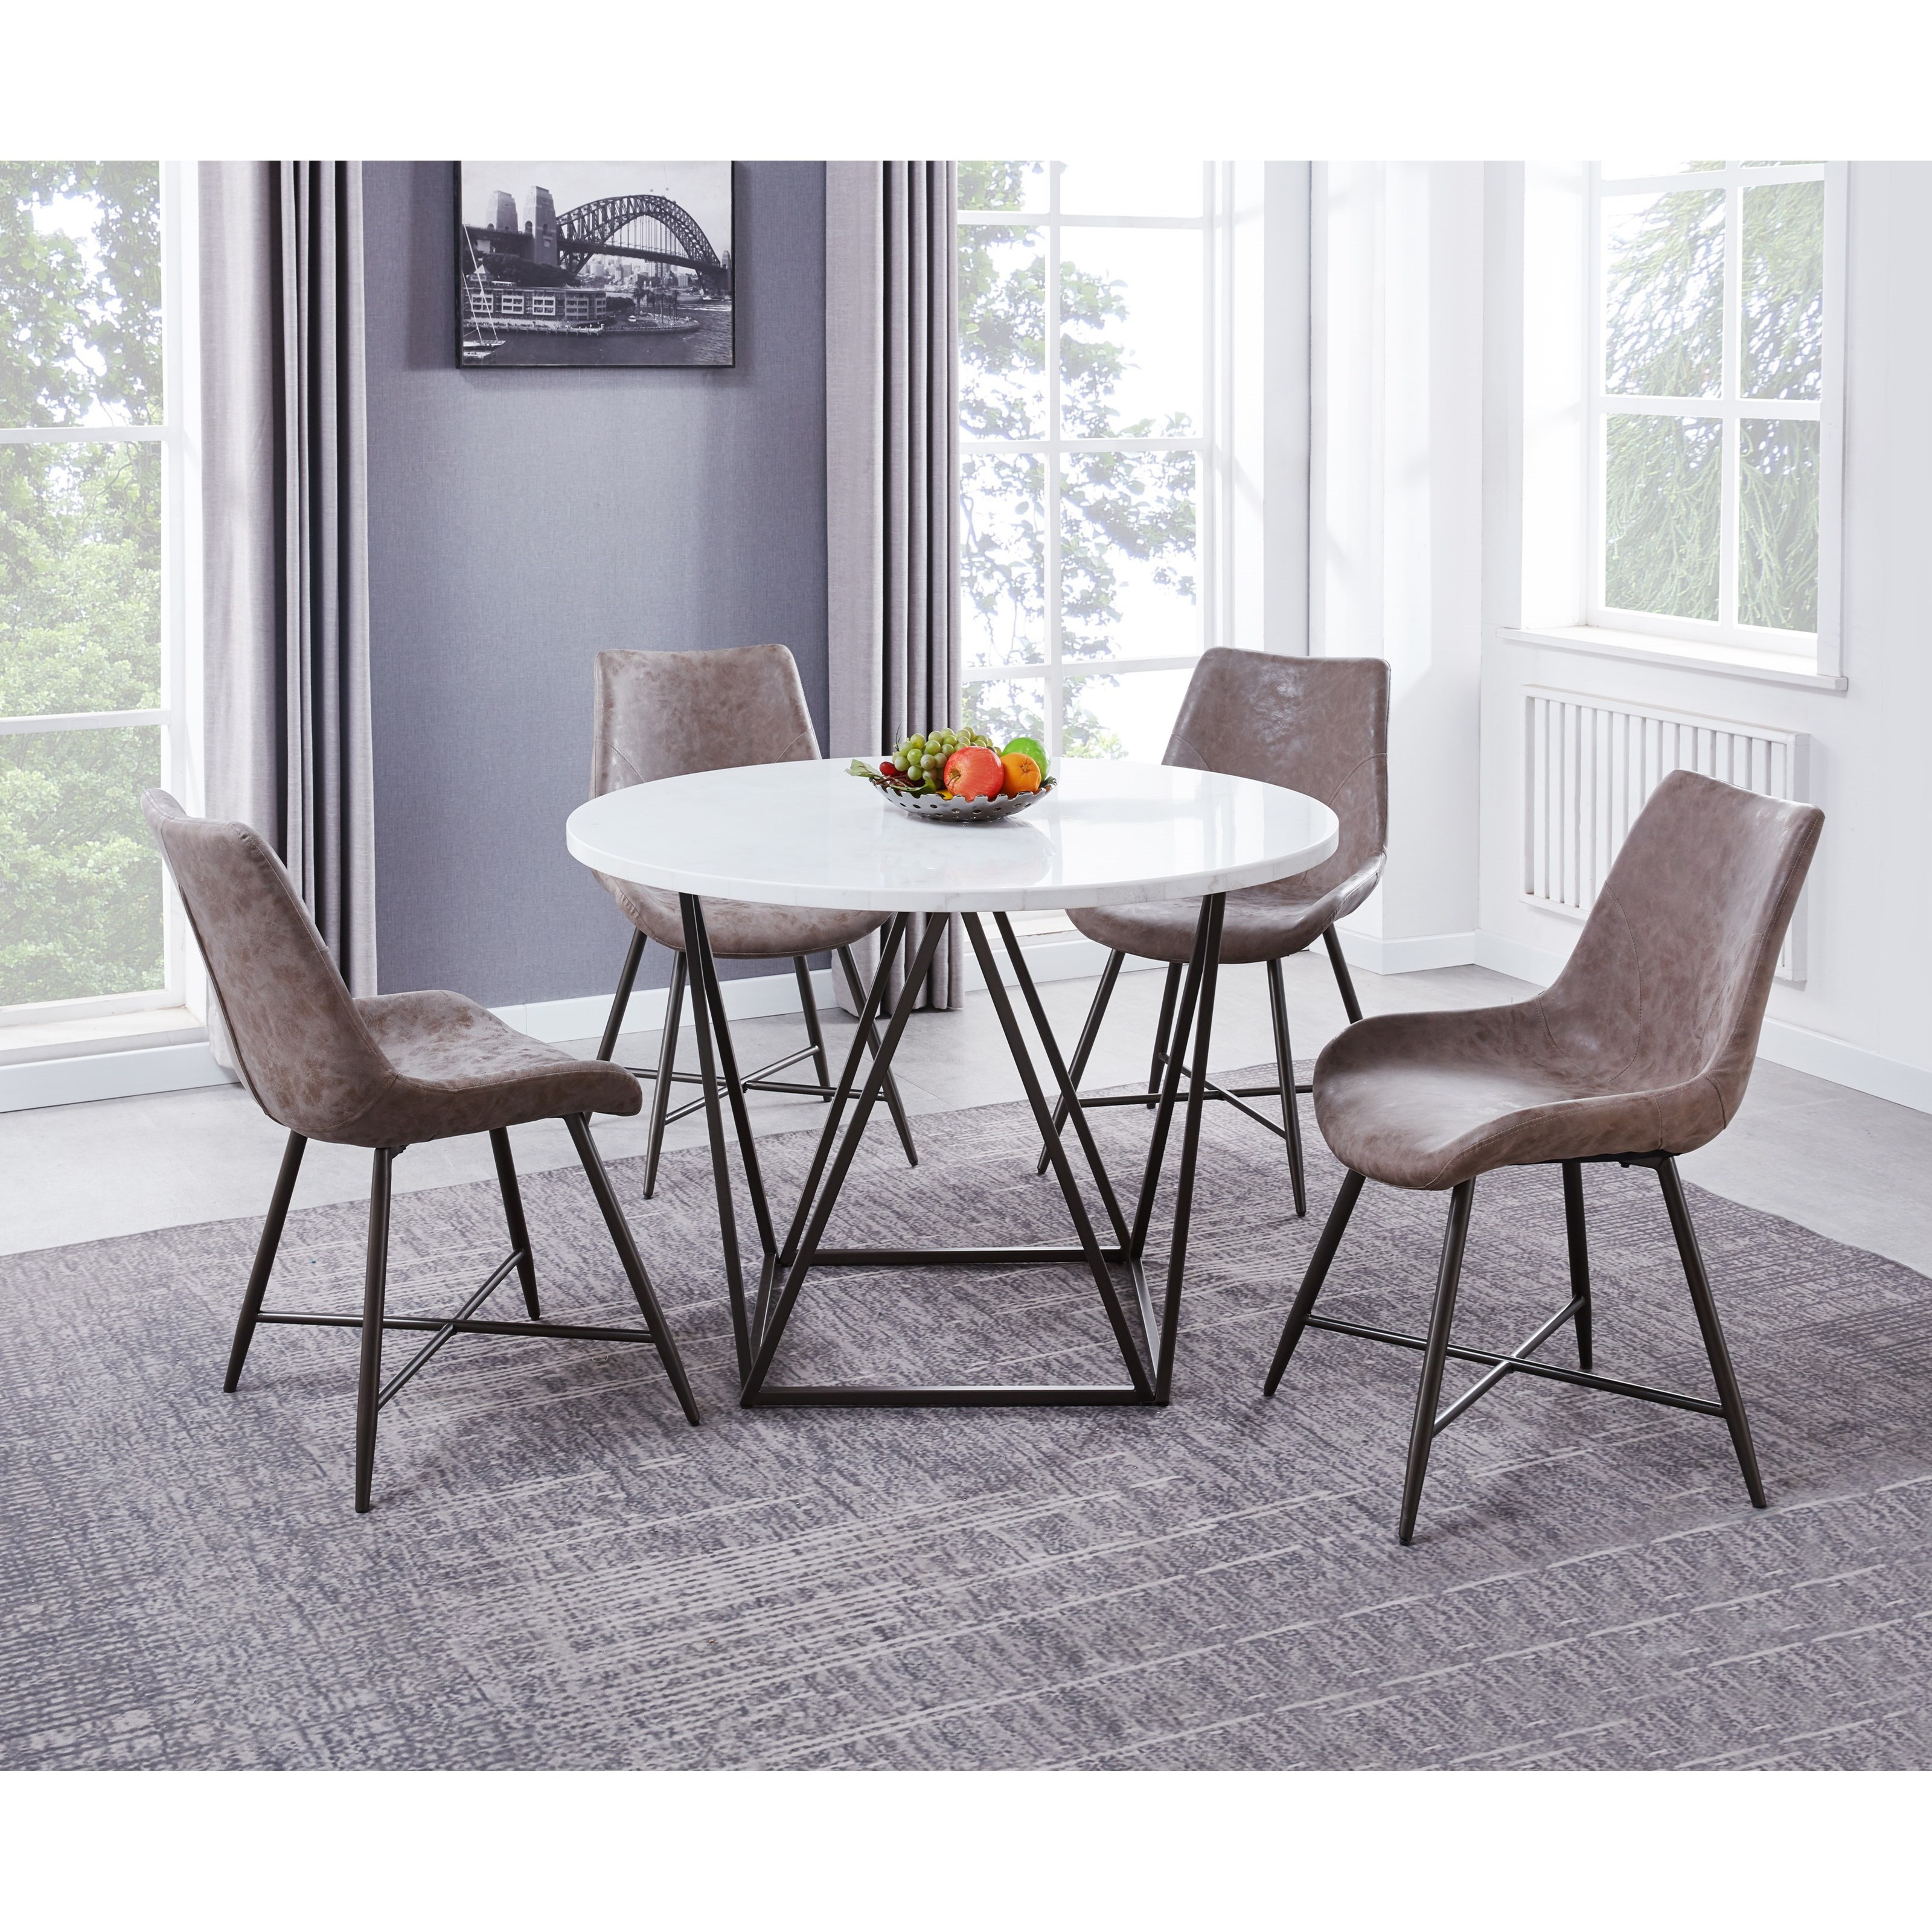 Ramona 5-Piece Dining Table and Chair Set by Steve Silver at Walker's Furniture